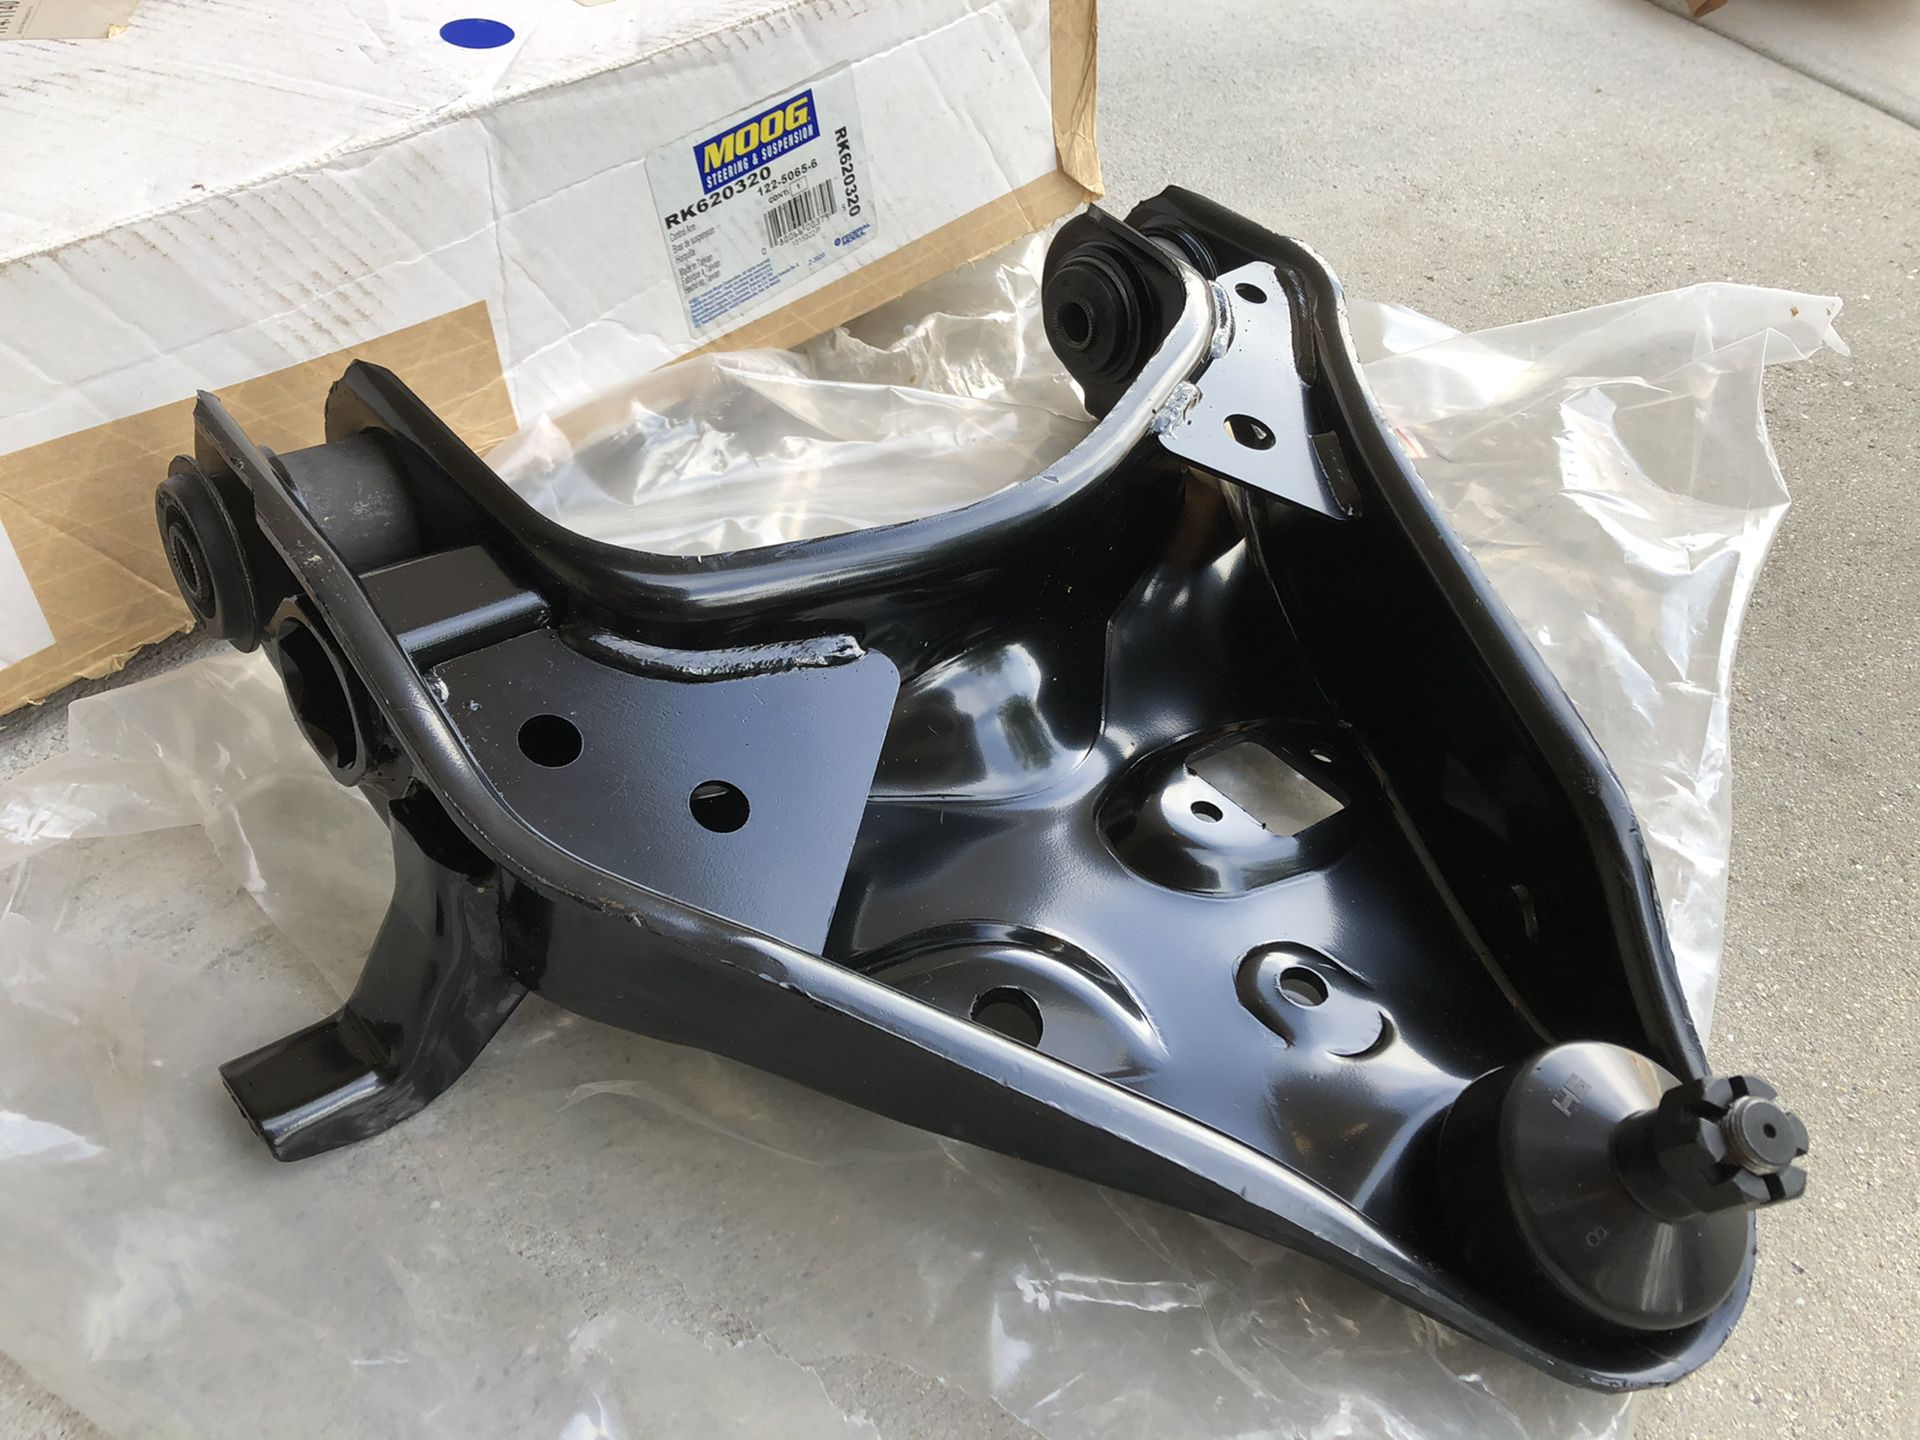 Moog lower front right side control arm & ball joint assembly fitting 04 Ford Sport Trac pt.#RK620320